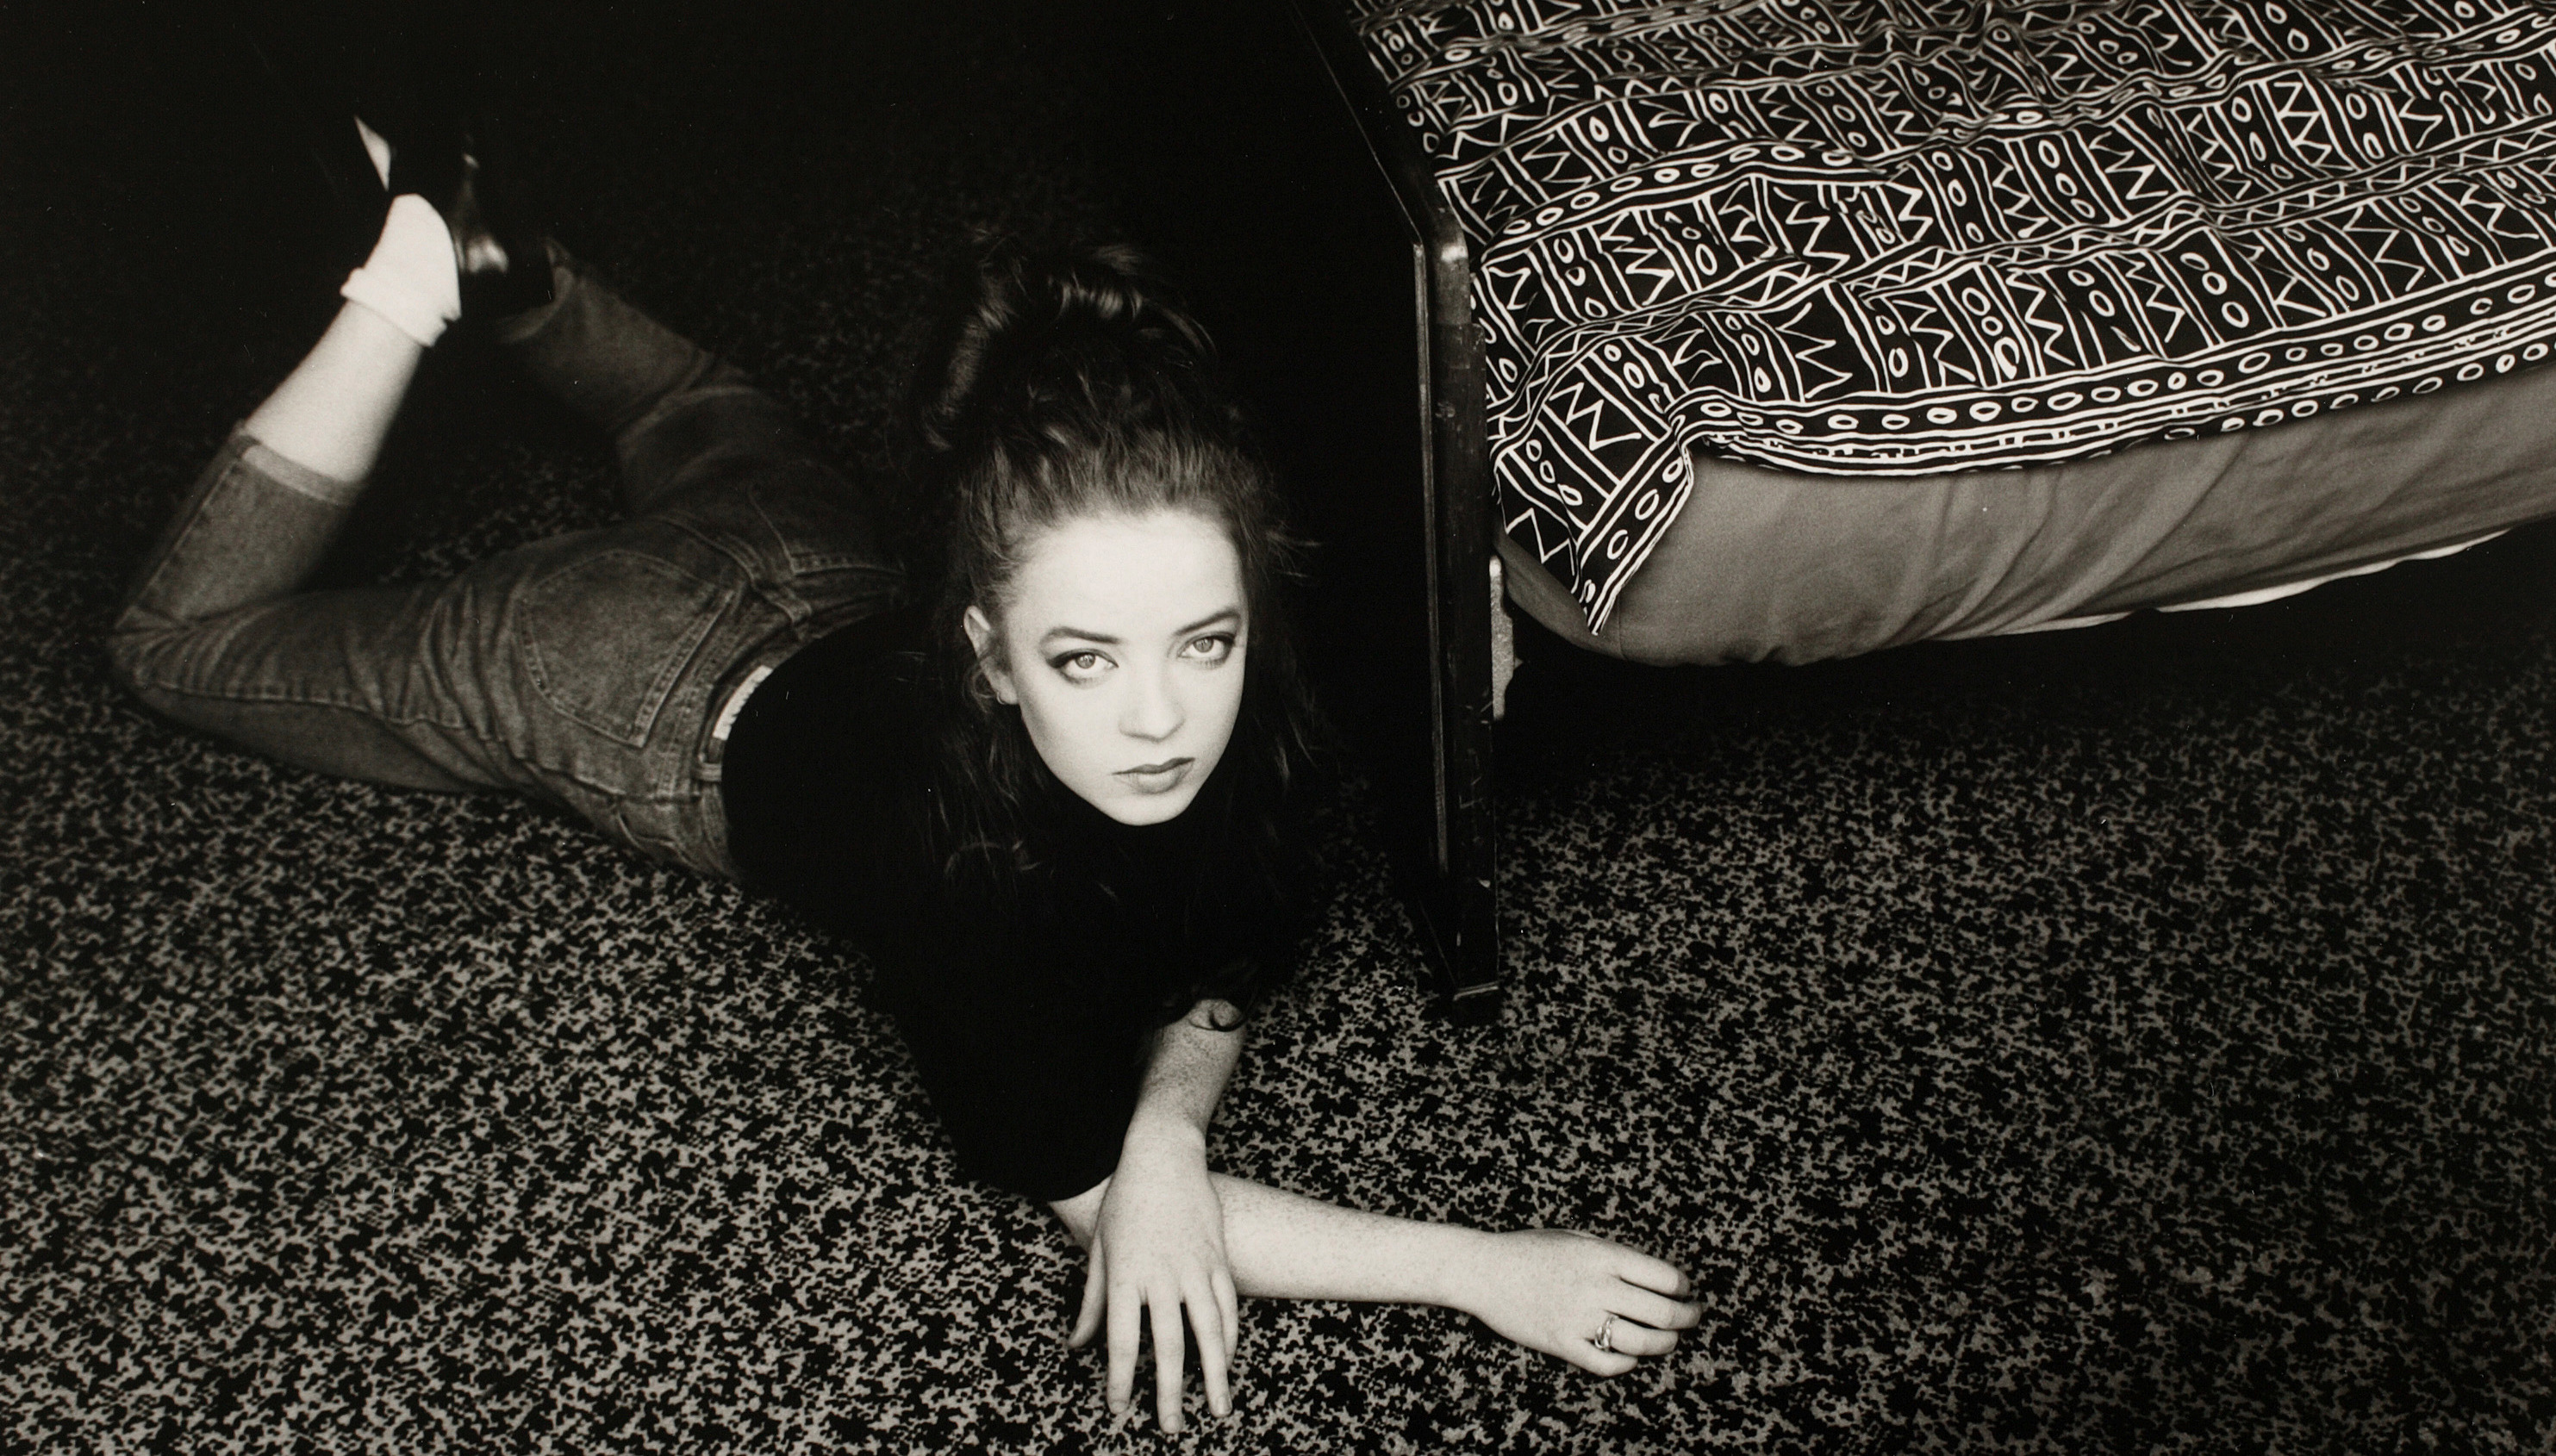 Shirley Manson, Singer and Actor